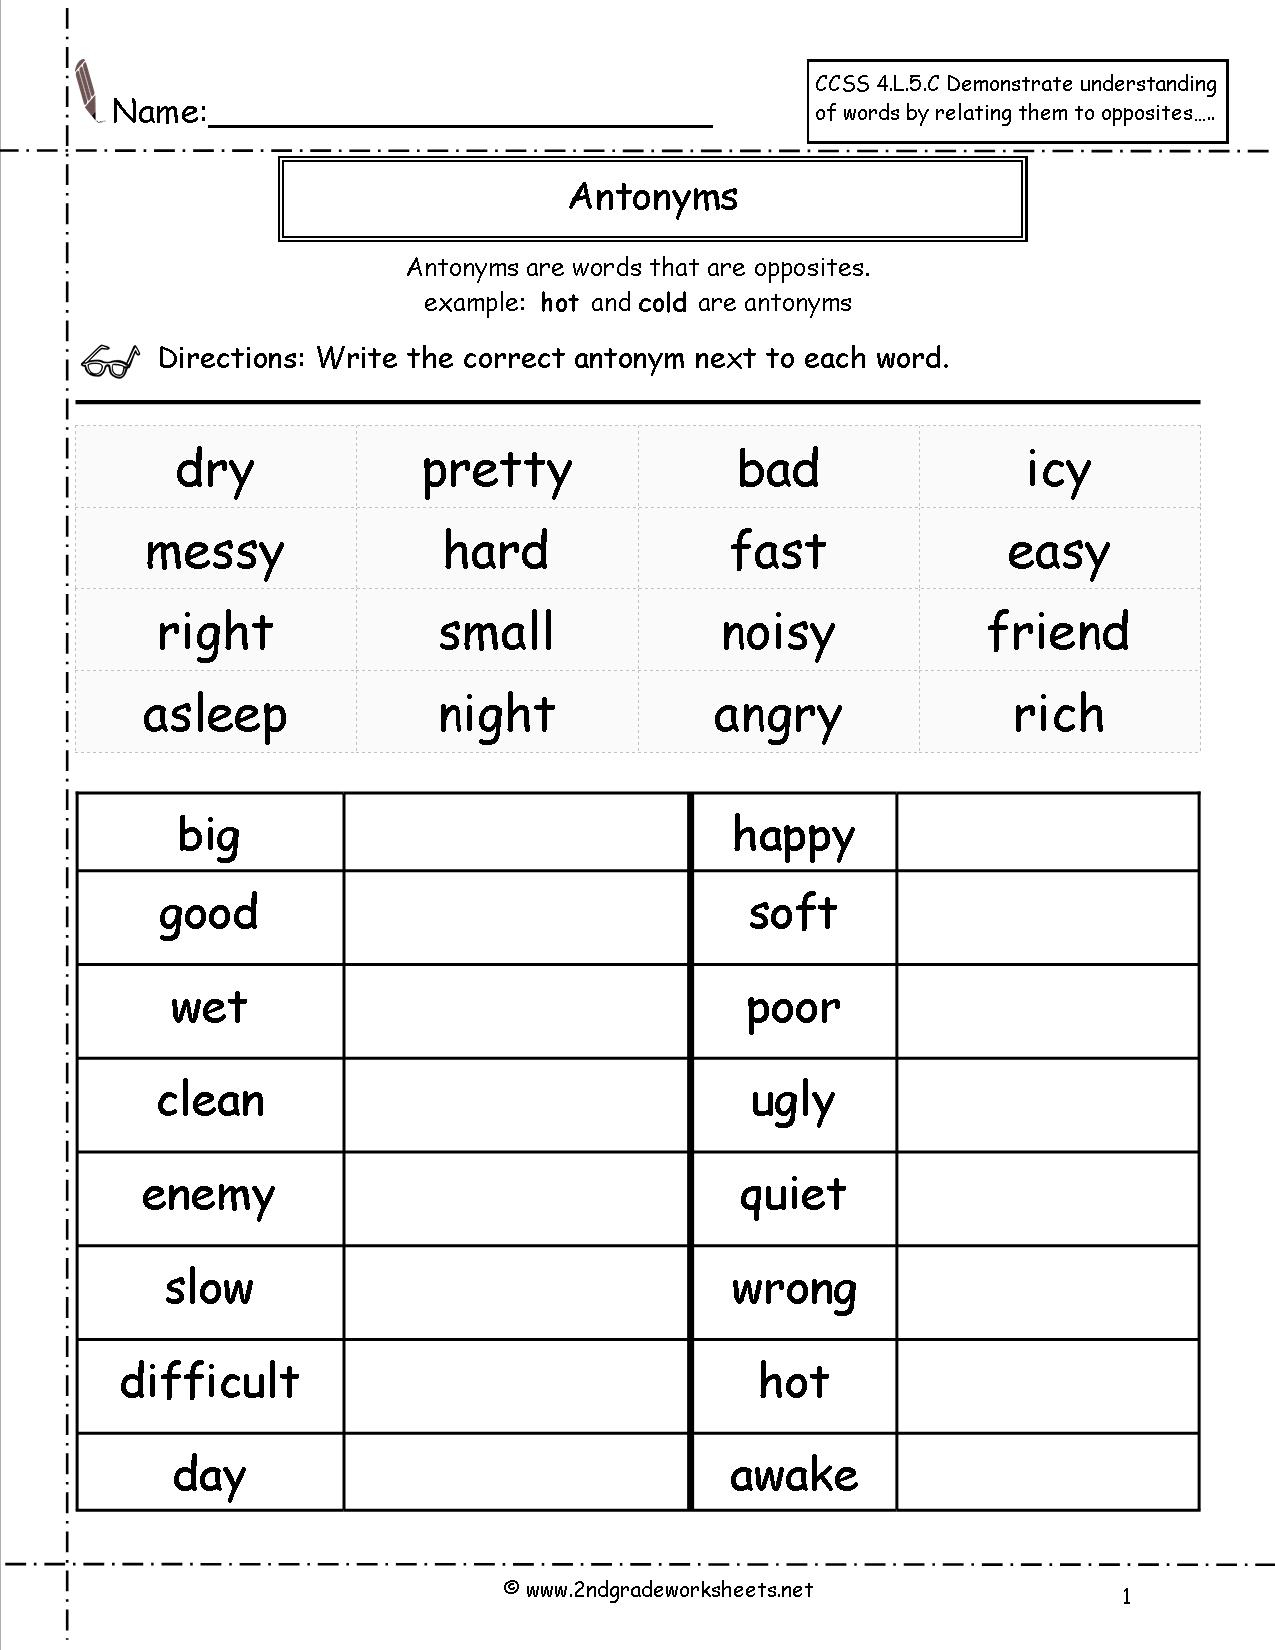 Synonyms And Antonyms Worksheets | Antonyms Printable Worksheets